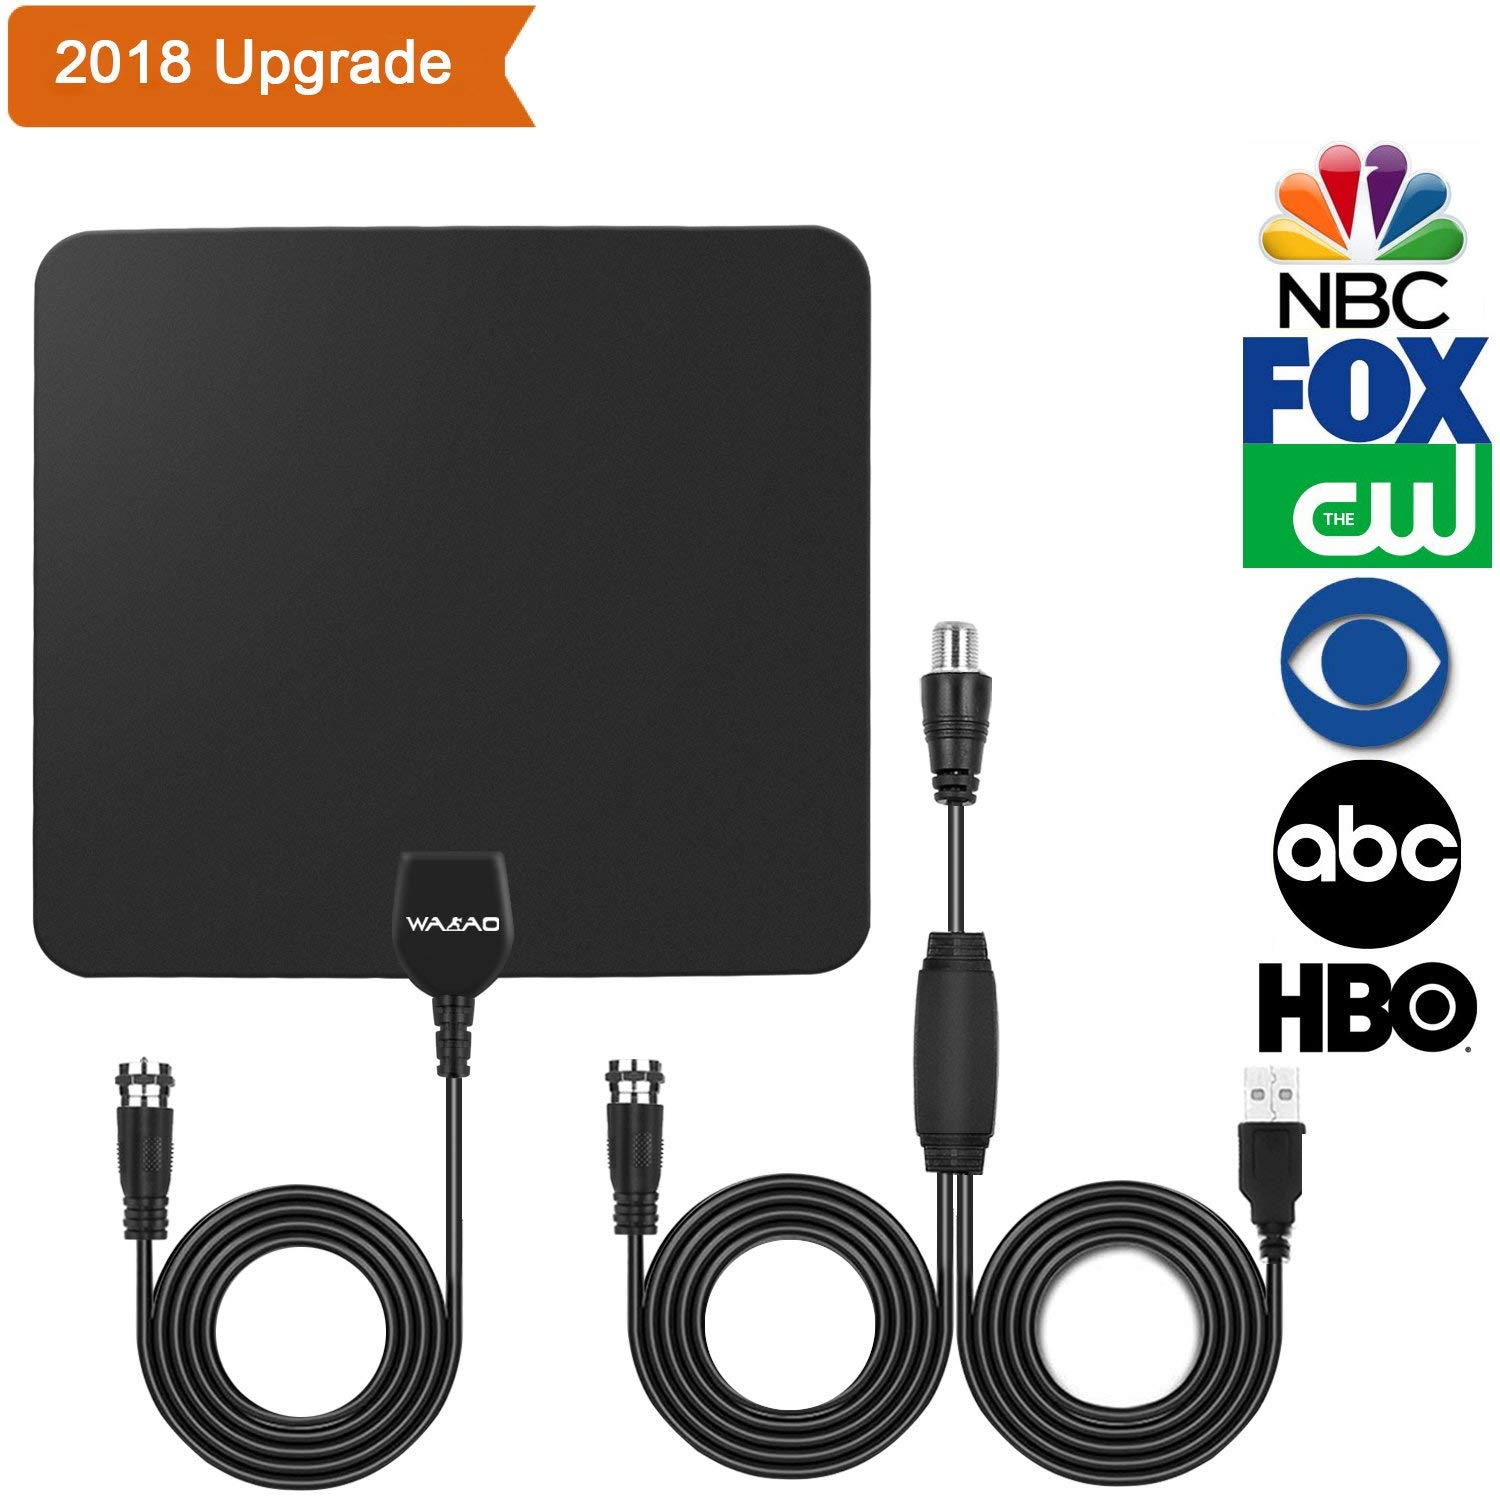 MEOO TV Antenna Indoor HD Digital TV Antenna with 50 Miles Long Range Amplifier HDTV Signal Booster Upgraded Version Coax Cable-BlackTV Antenna, Best 50 Miles Range Amplified Indoor HDTV Antenna